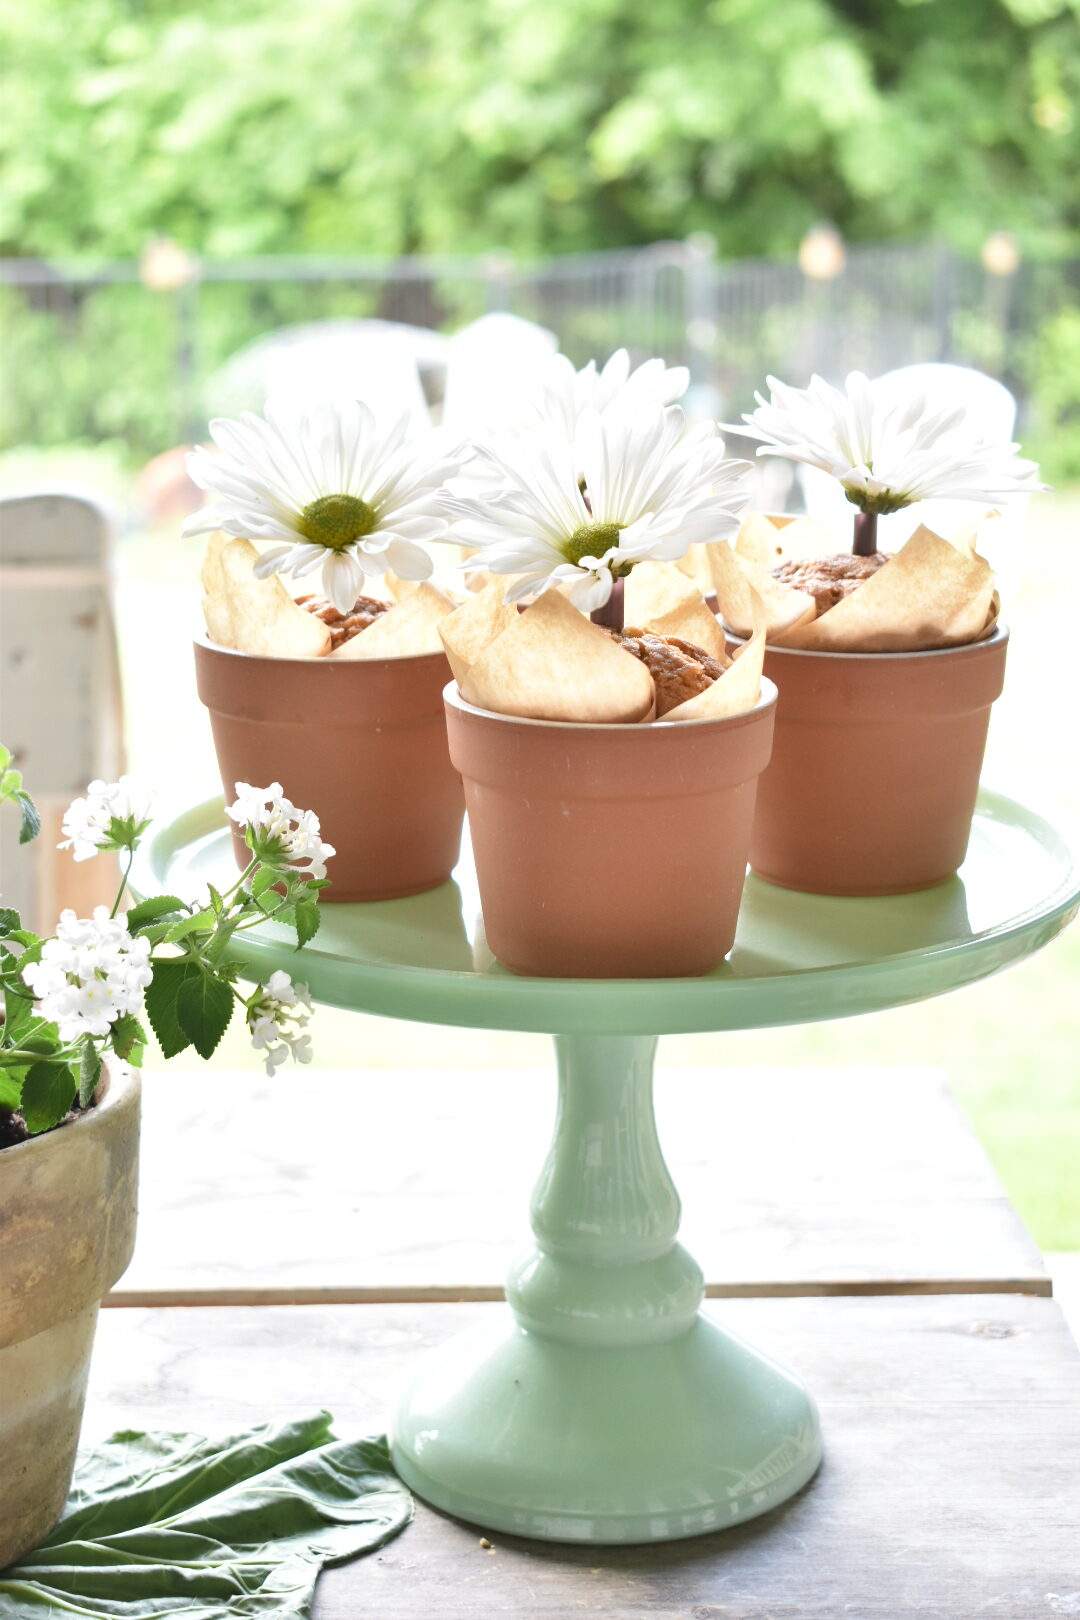 carrot muffins served in flower pots